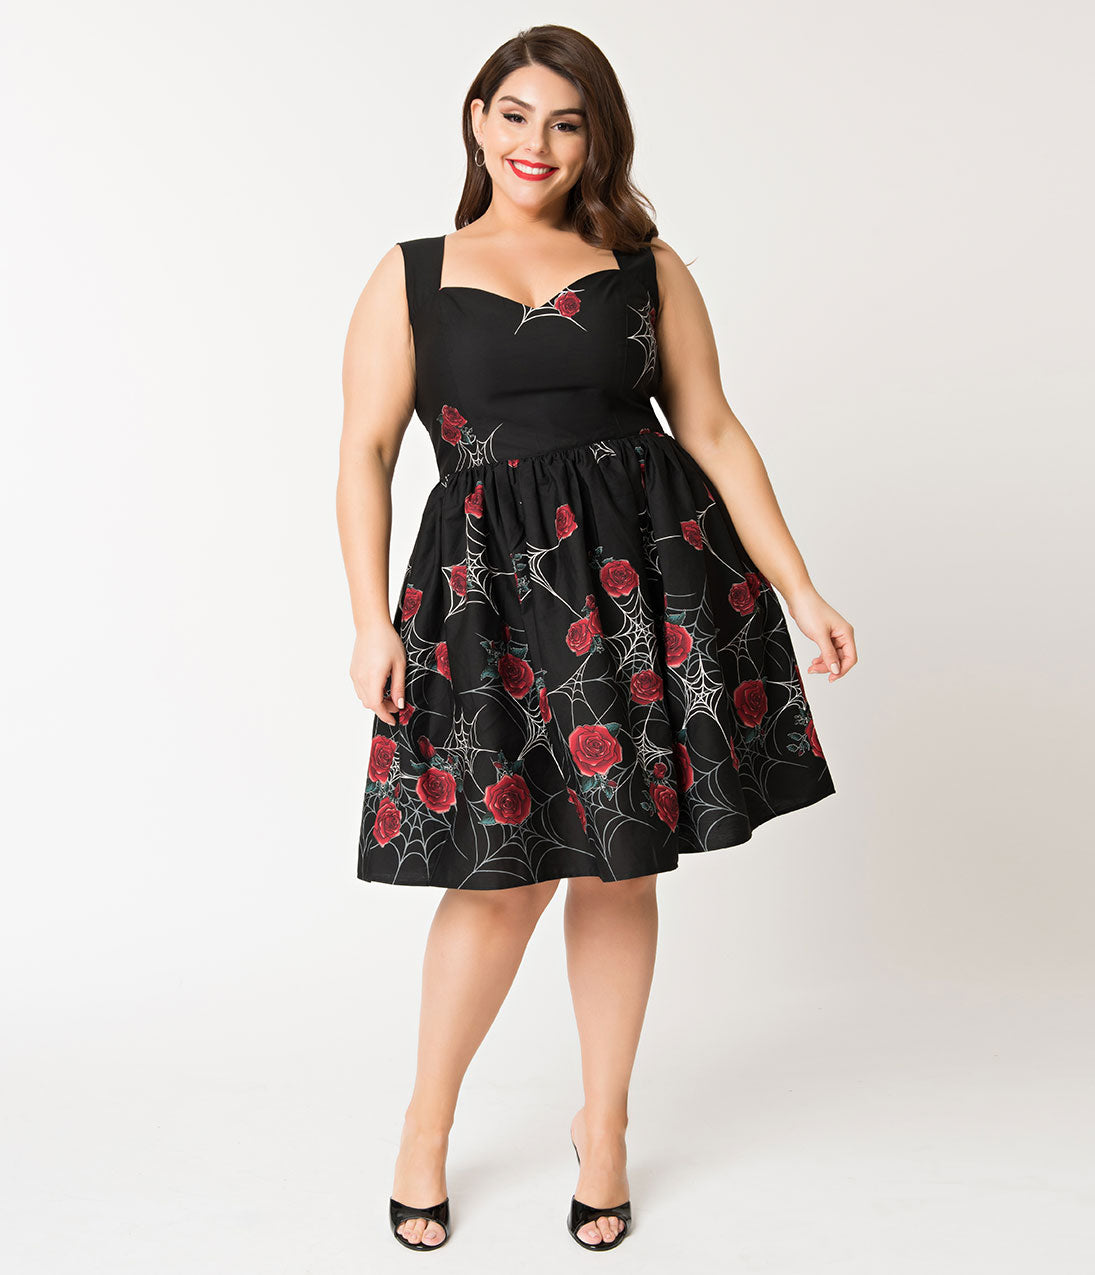 1950s Plus Size Dresses, Clothing and Costumes Hell Bunny Plus Size Black Spiderweb  Rose Sabrina Swing Dress $82.00 AT vintagedancer.com